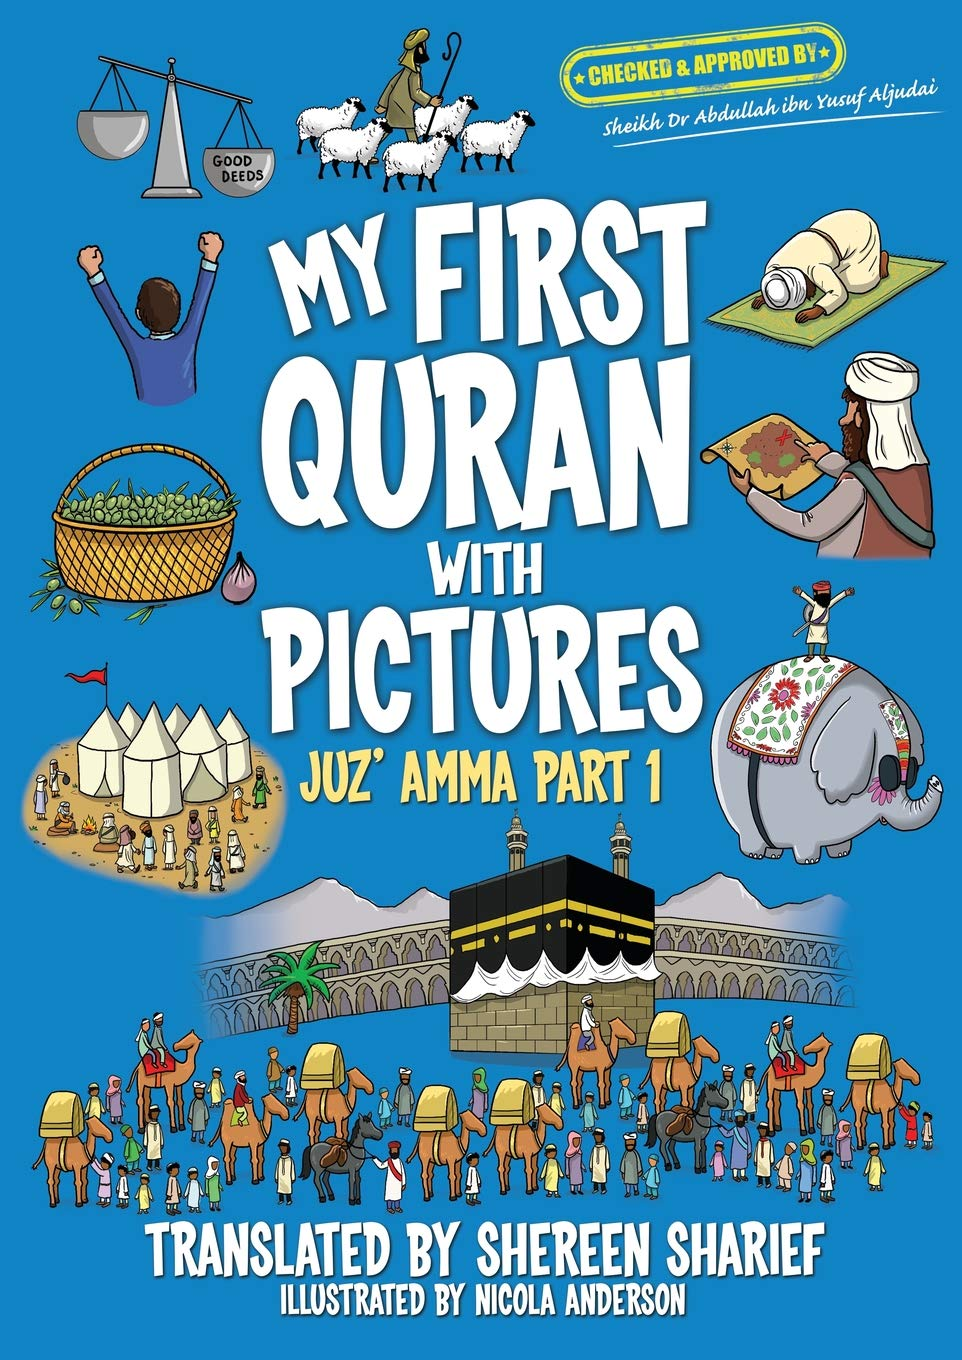 My First Quran With Pictures: Juz' Amma Part 1: Amazon co uk